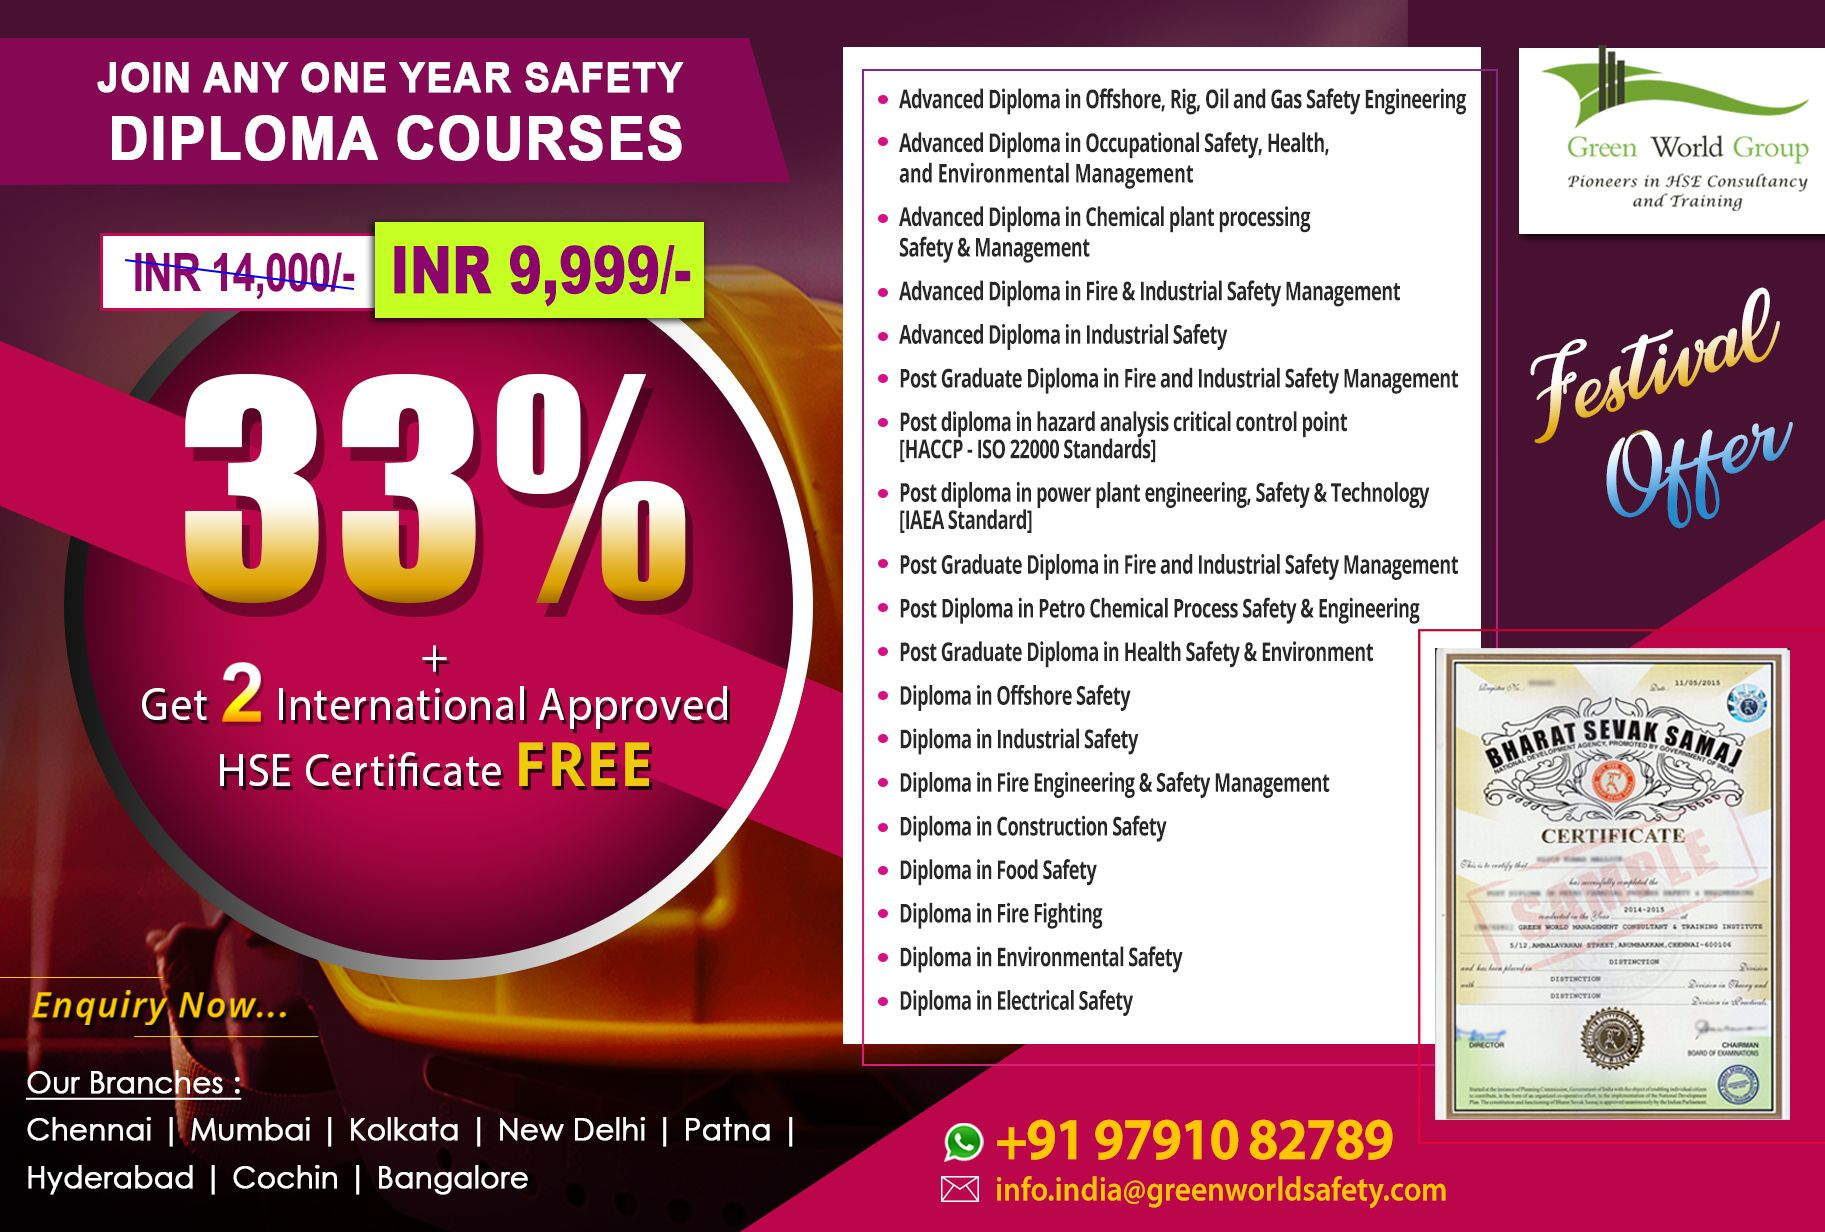 National Safety Diploma Courses are best certification for